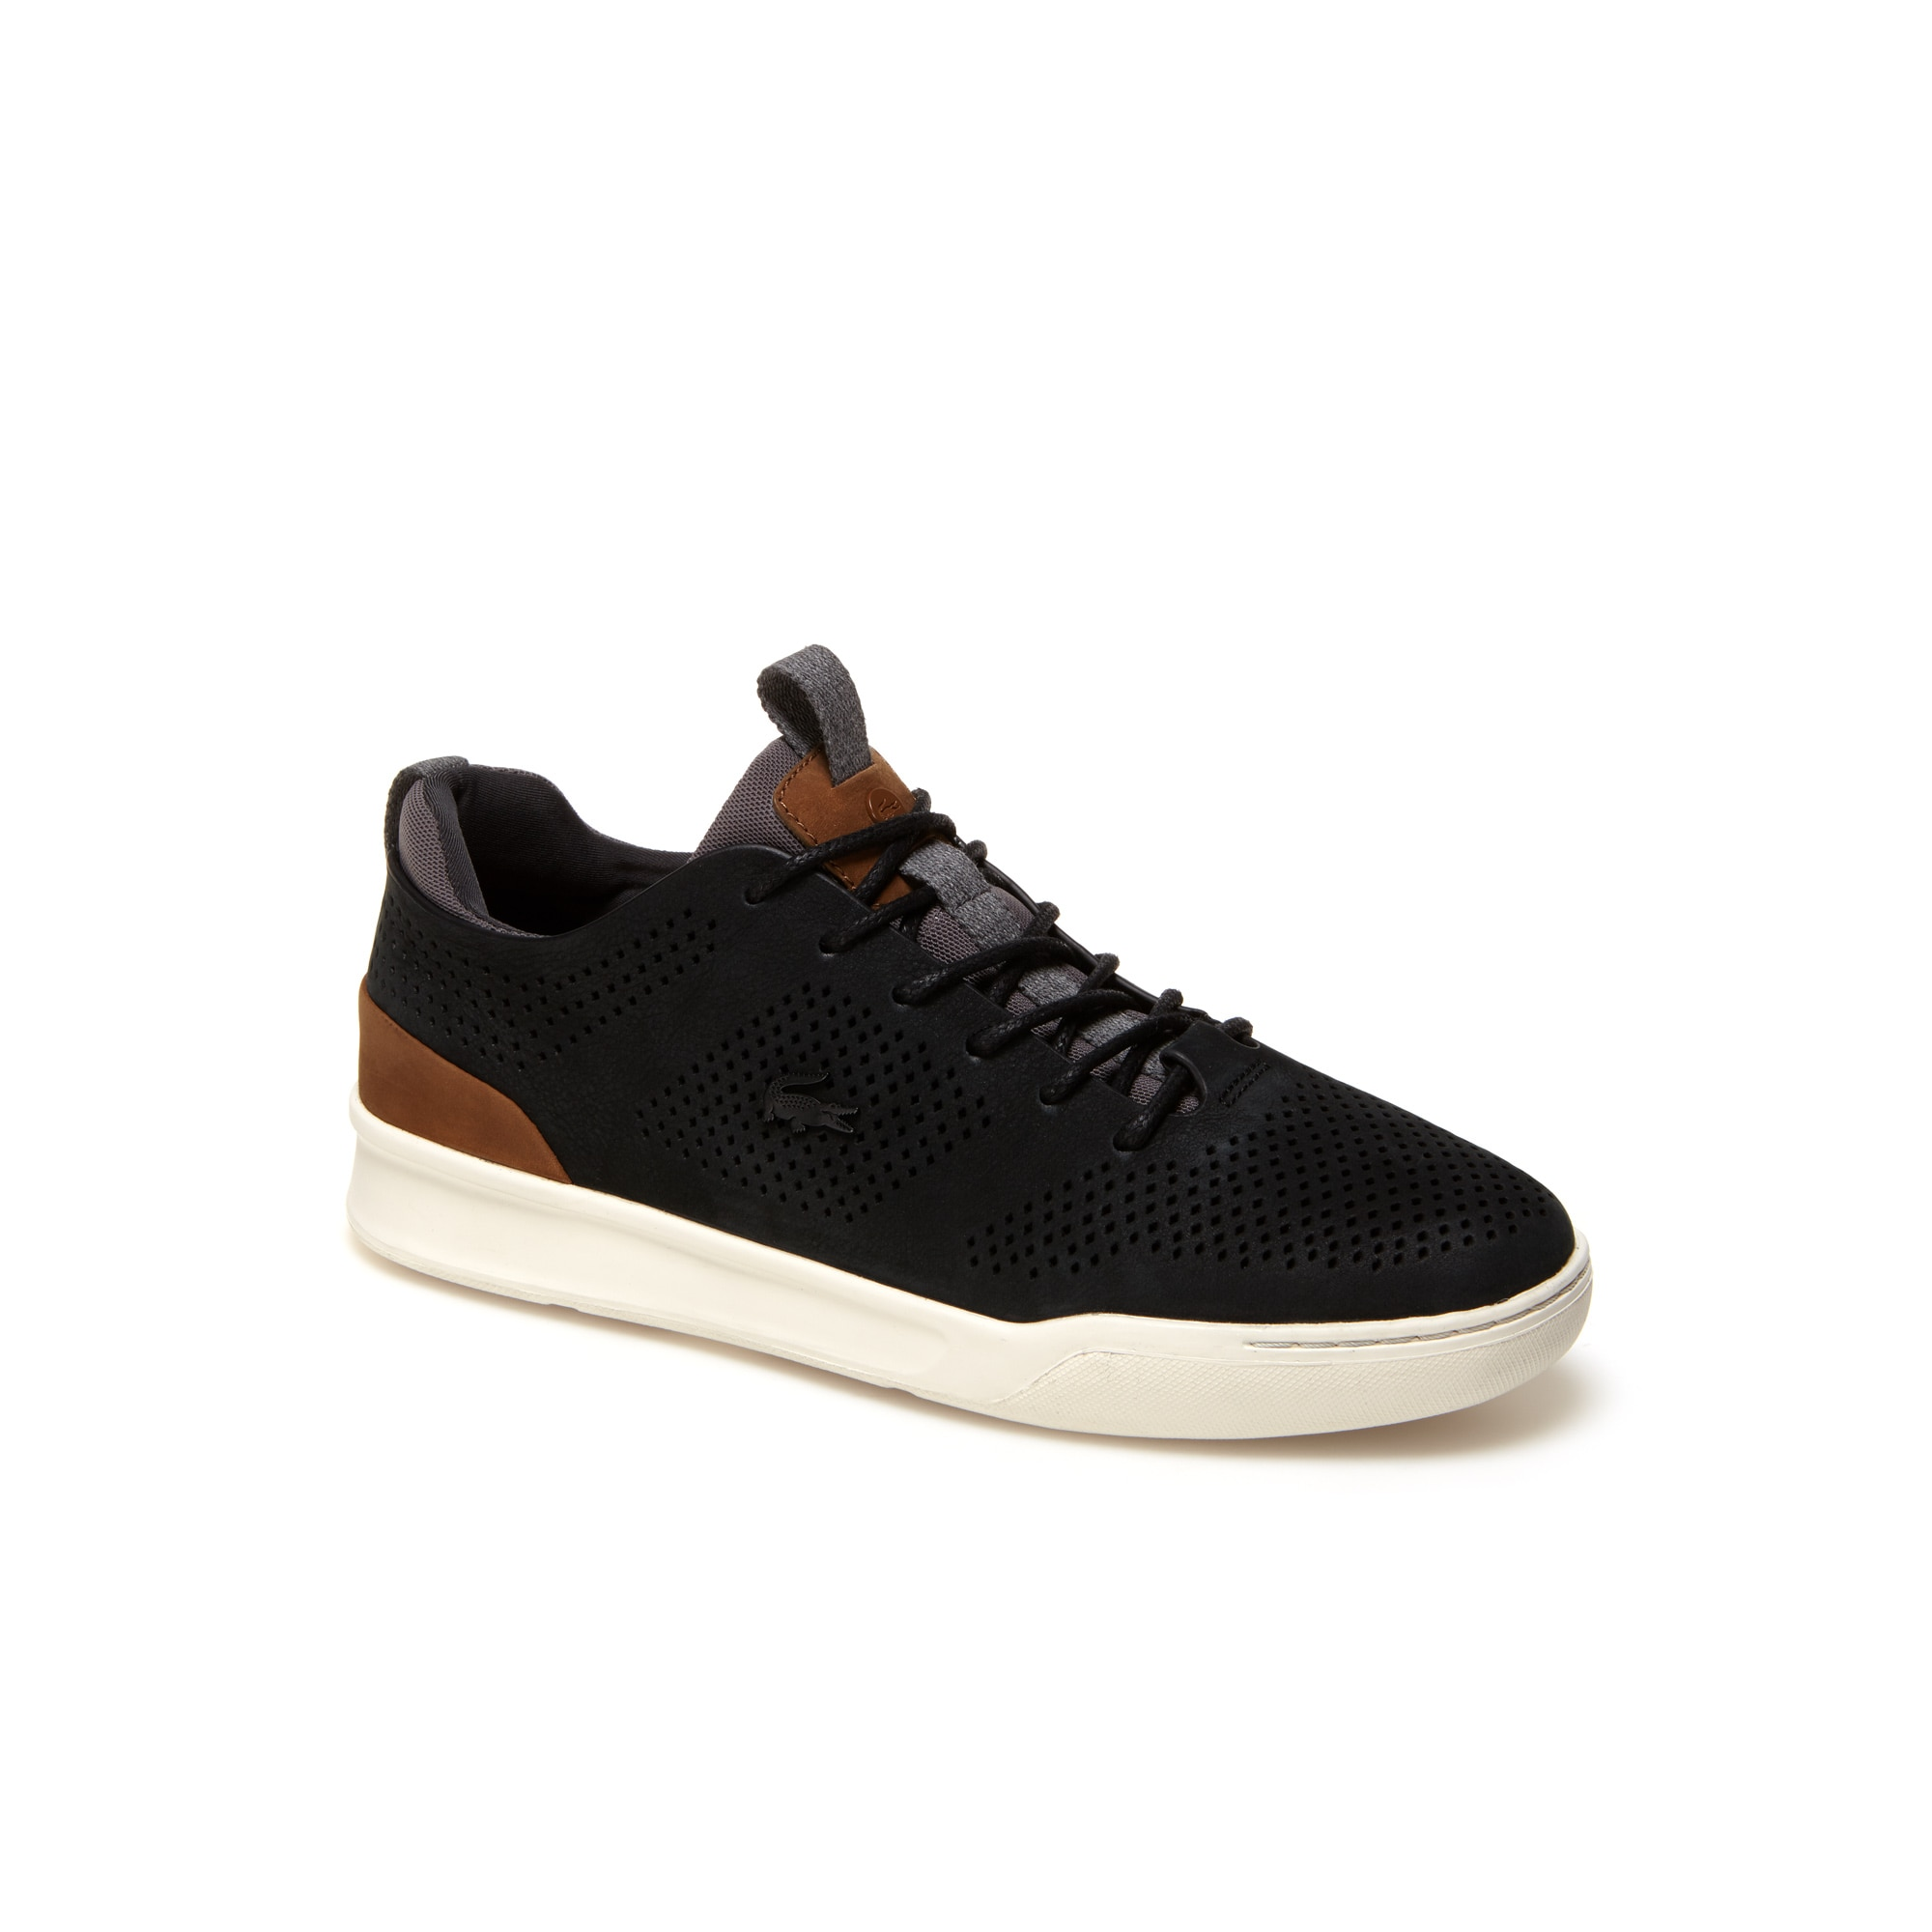 Men's Explorateur Craft Leather Trainers